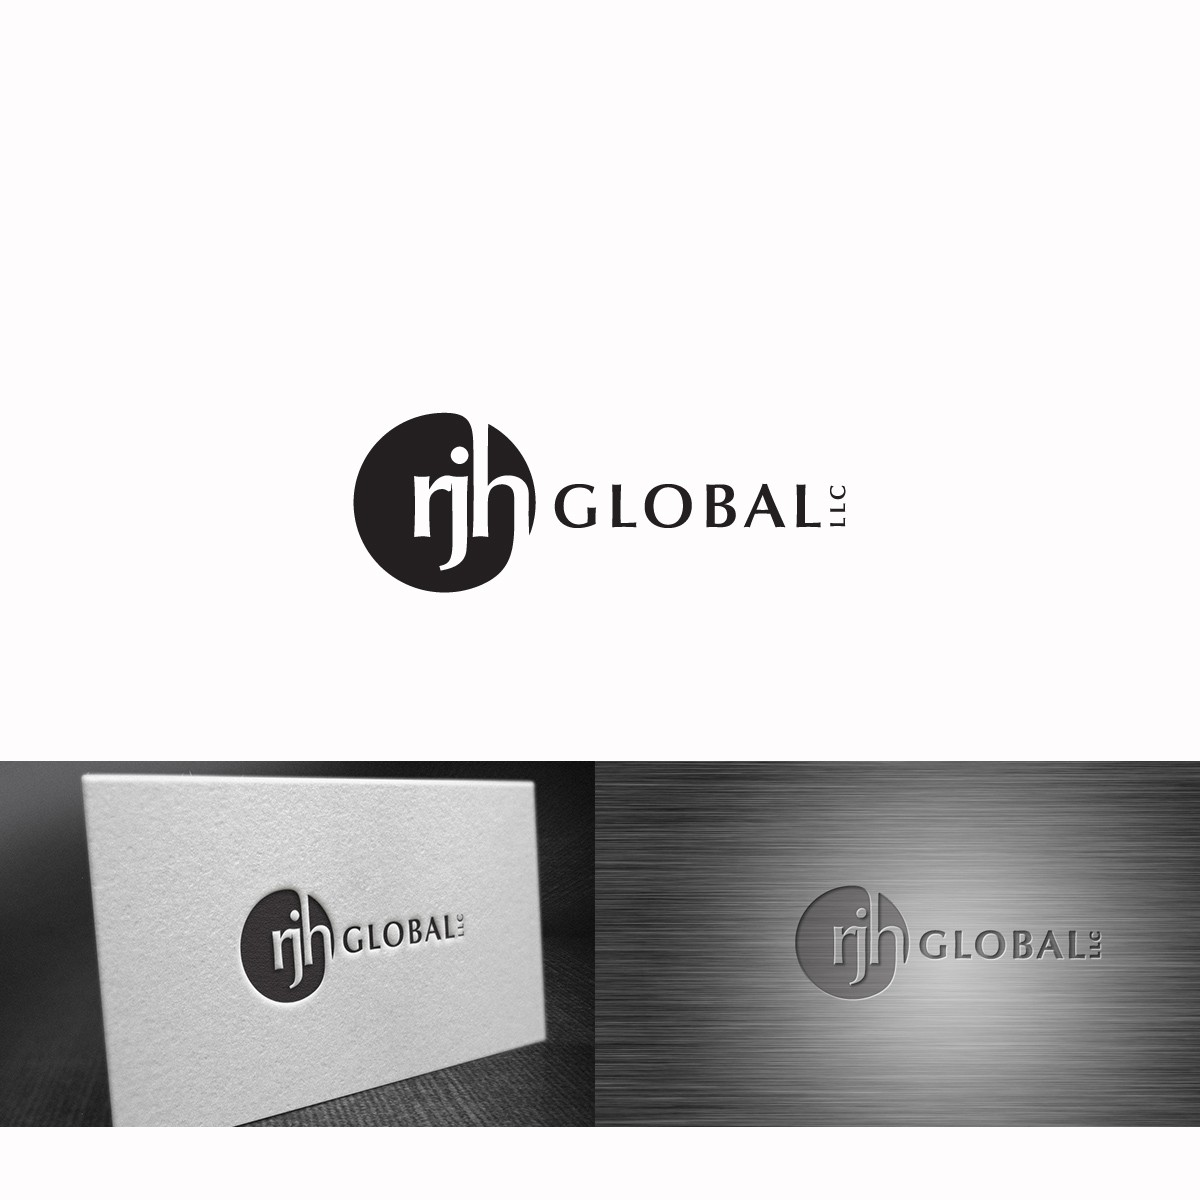 New logo wanted for RJH Global